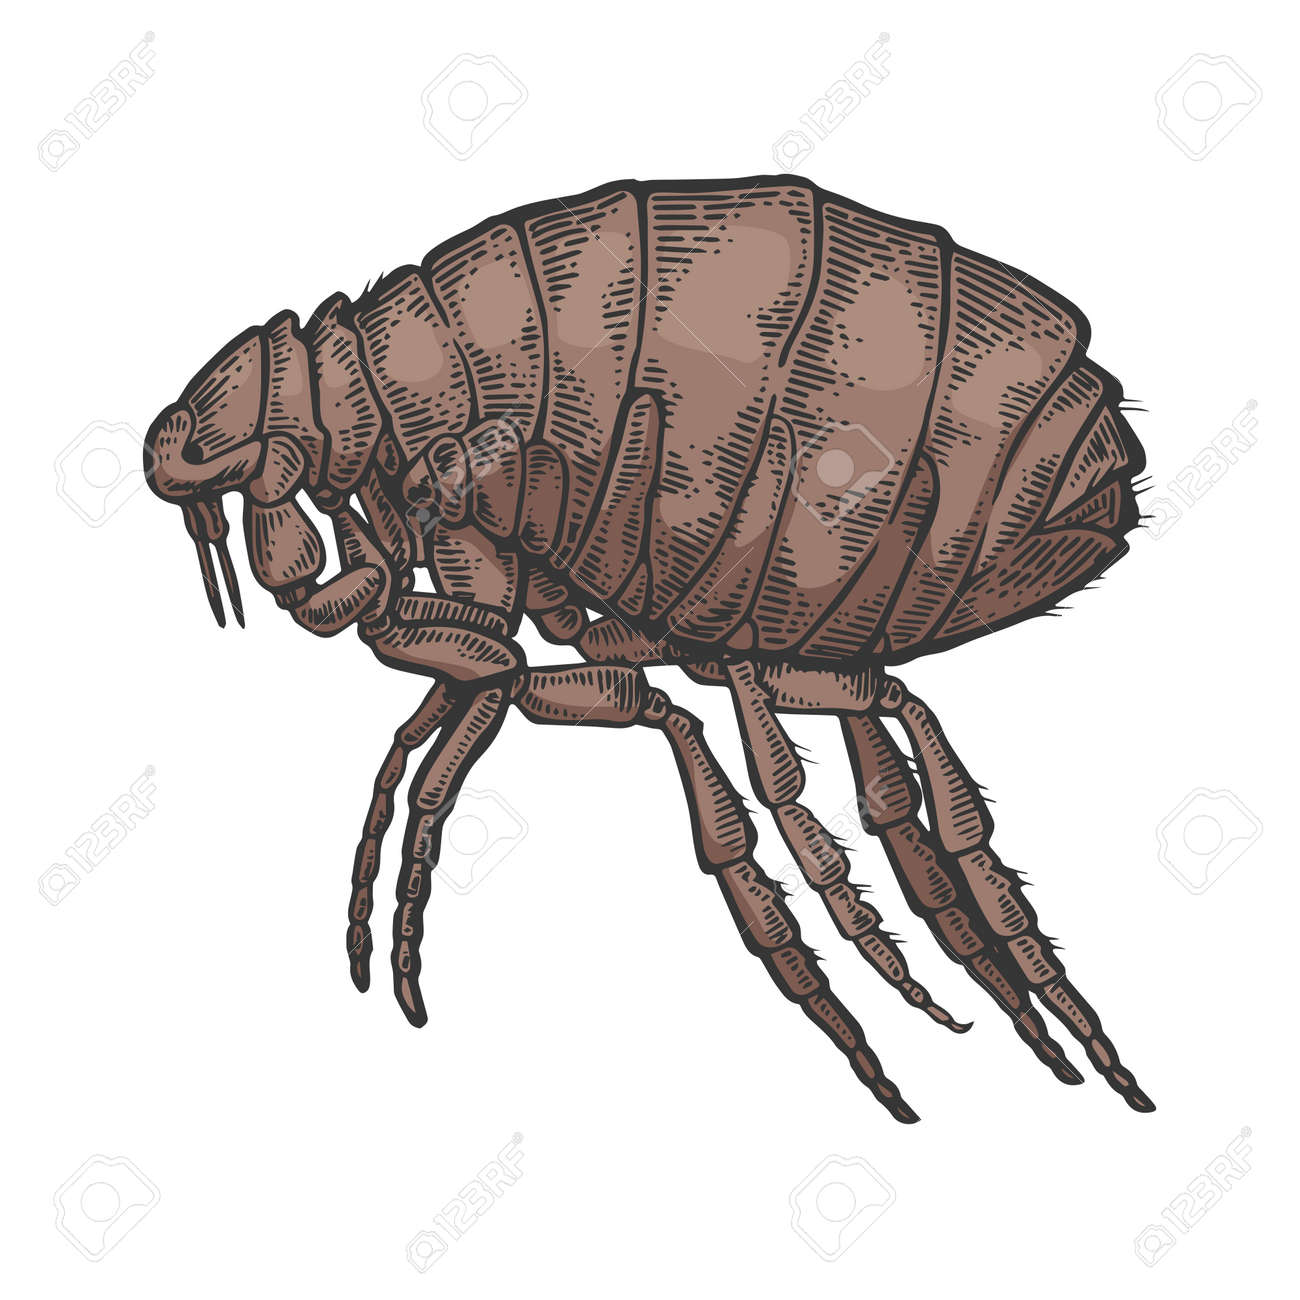 Flea insect parasite color sketch engraving vector illustration. Scratch board style imitation. Black and white hand drawn image. - 128502573